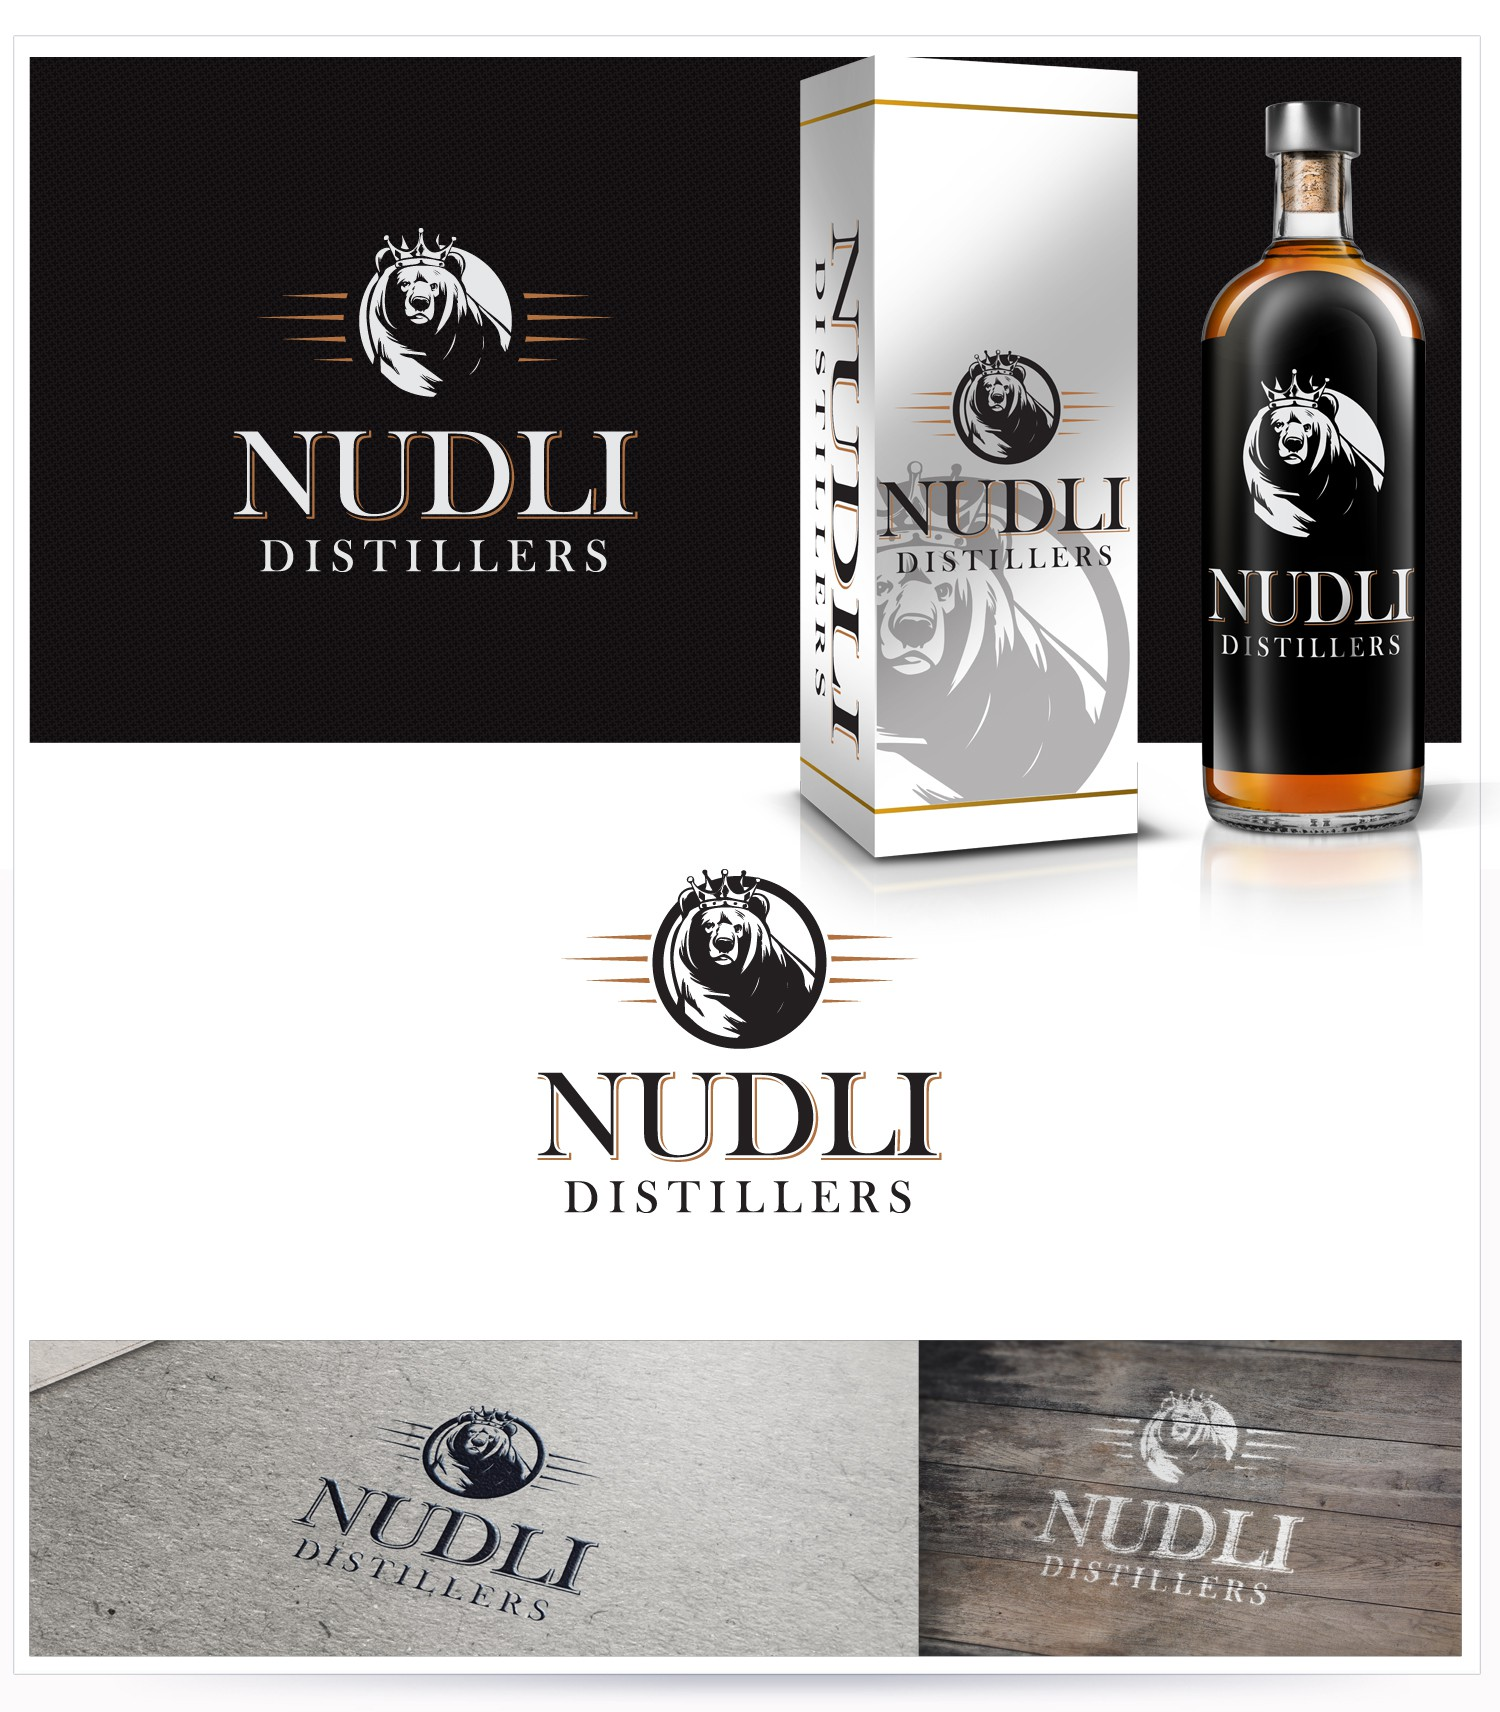 Awesome needed! Create a brand logo for a new craft, micro-distillery.